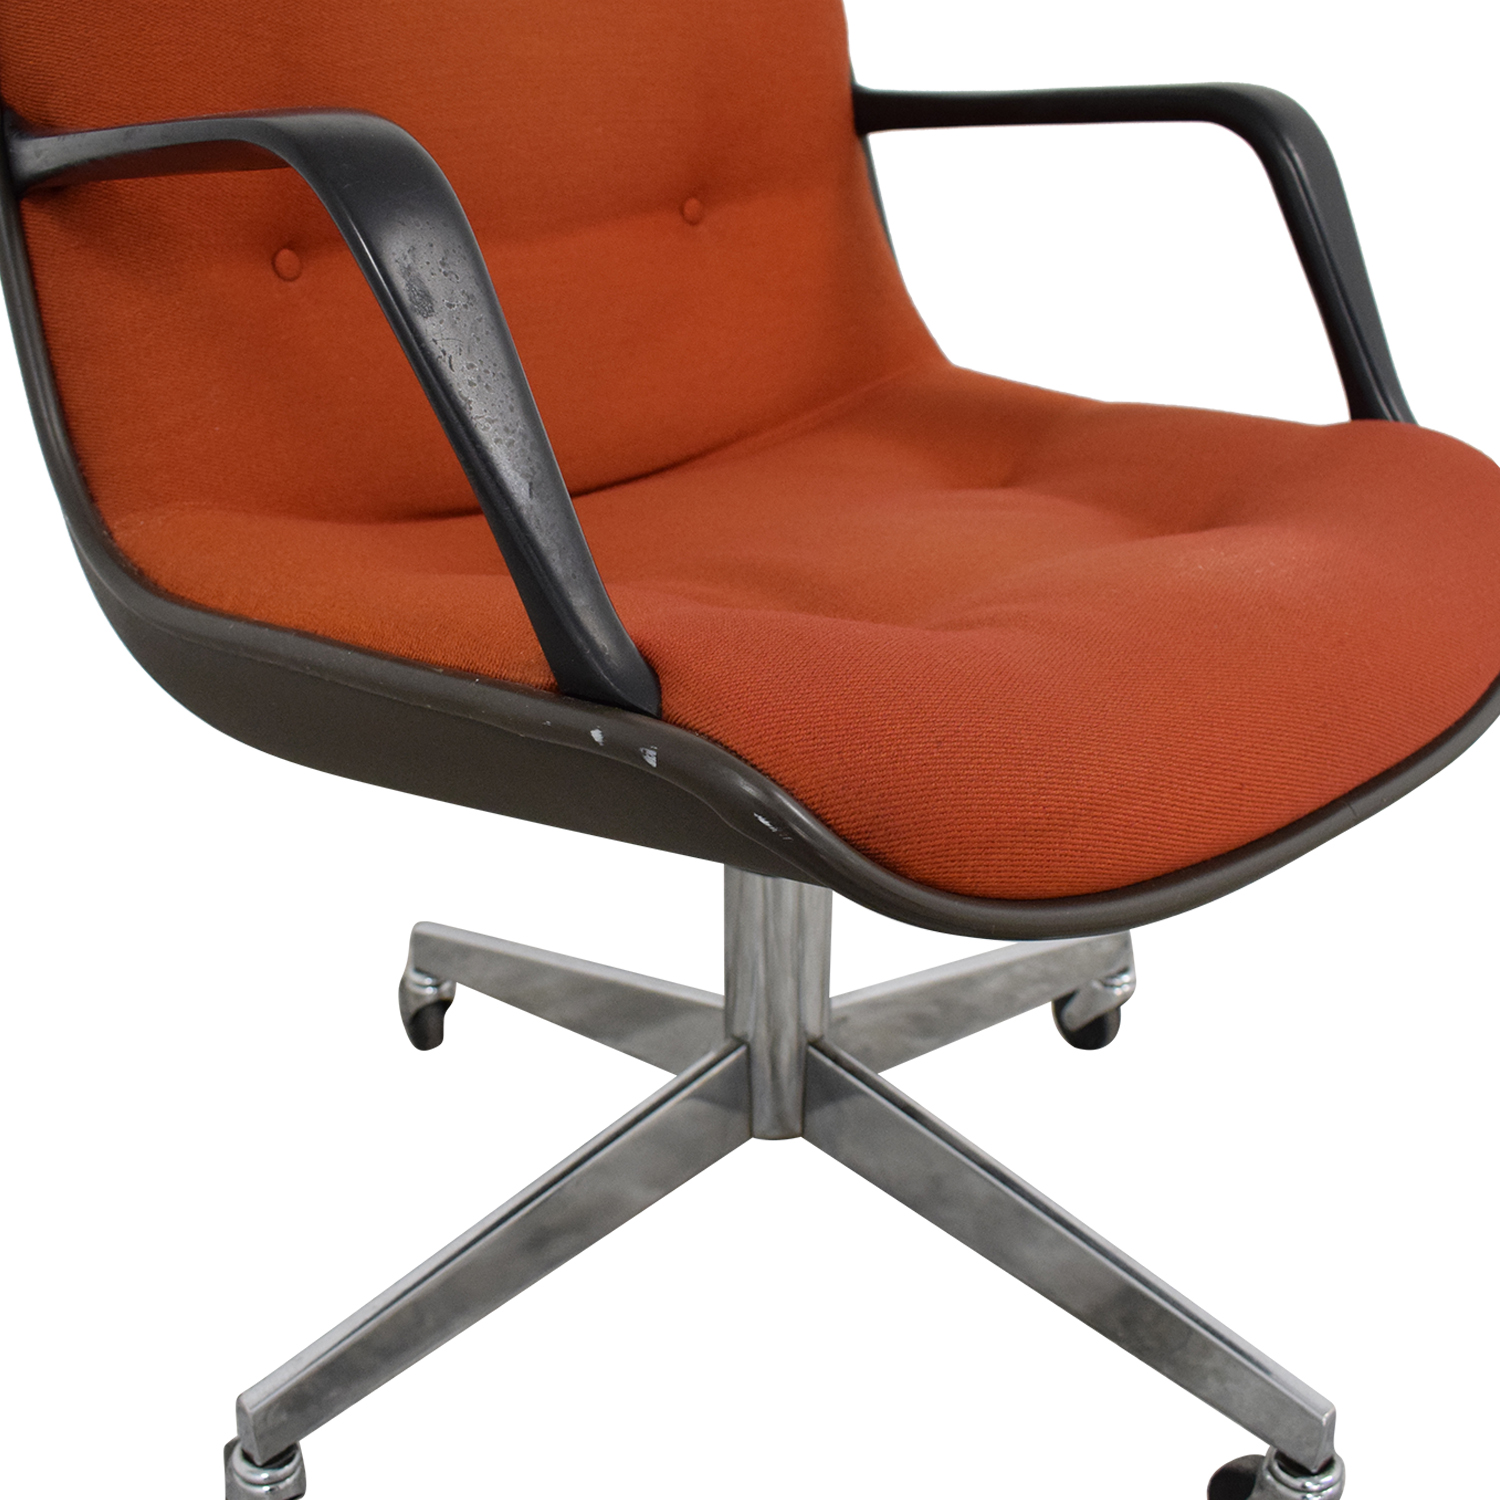 Steelcase 451 Supervisors Desk Chair / Chairs